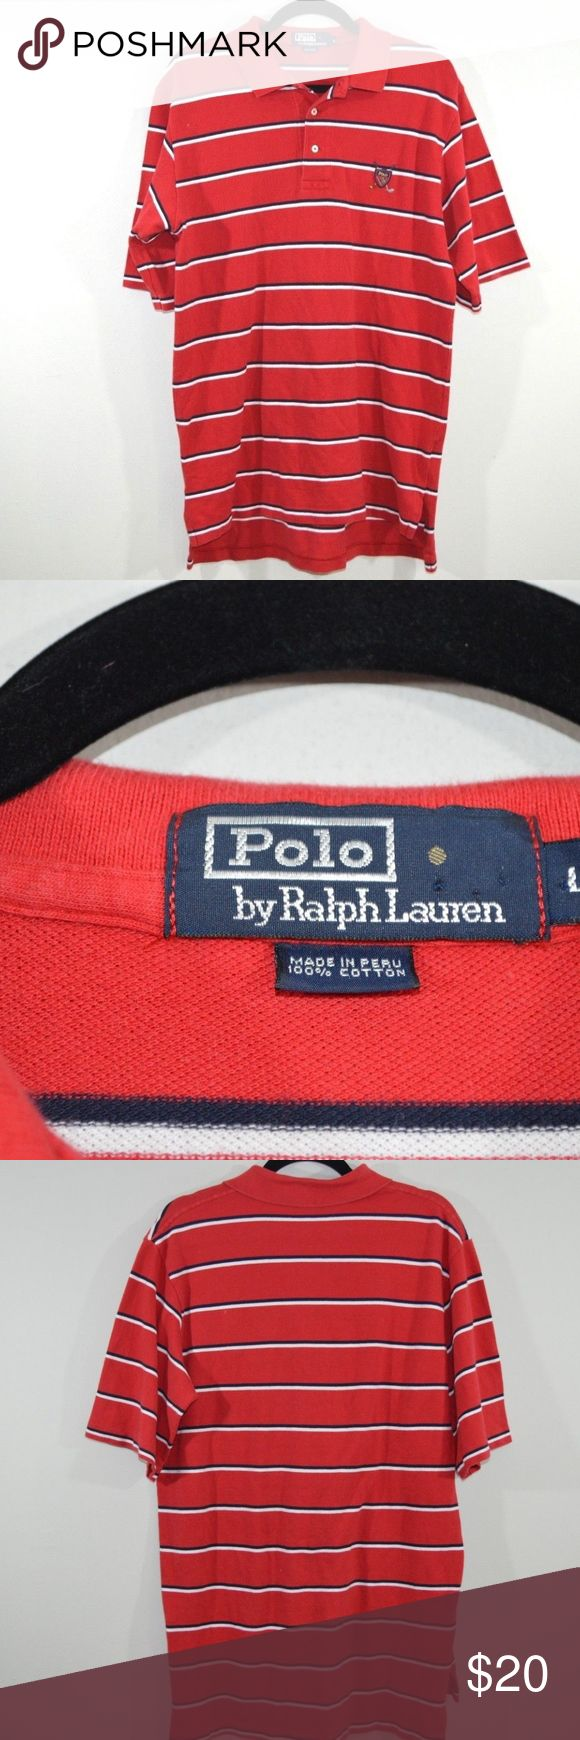 Polo by Ralph Lauren Golf Crest Polo Shirt Large Polo by Ralph Lauren Golf Crest Logo  Excellent shirt  Comes from a smoke-free household  Size is Large and the measurements are 21 inches pit to pit and 32 inches shoulder to base.  Red and White striped with a Golf Crest logo  Cotton   Check out my other items for sale in my store!  MX Polo by Ralph Lauren Shirts Polos